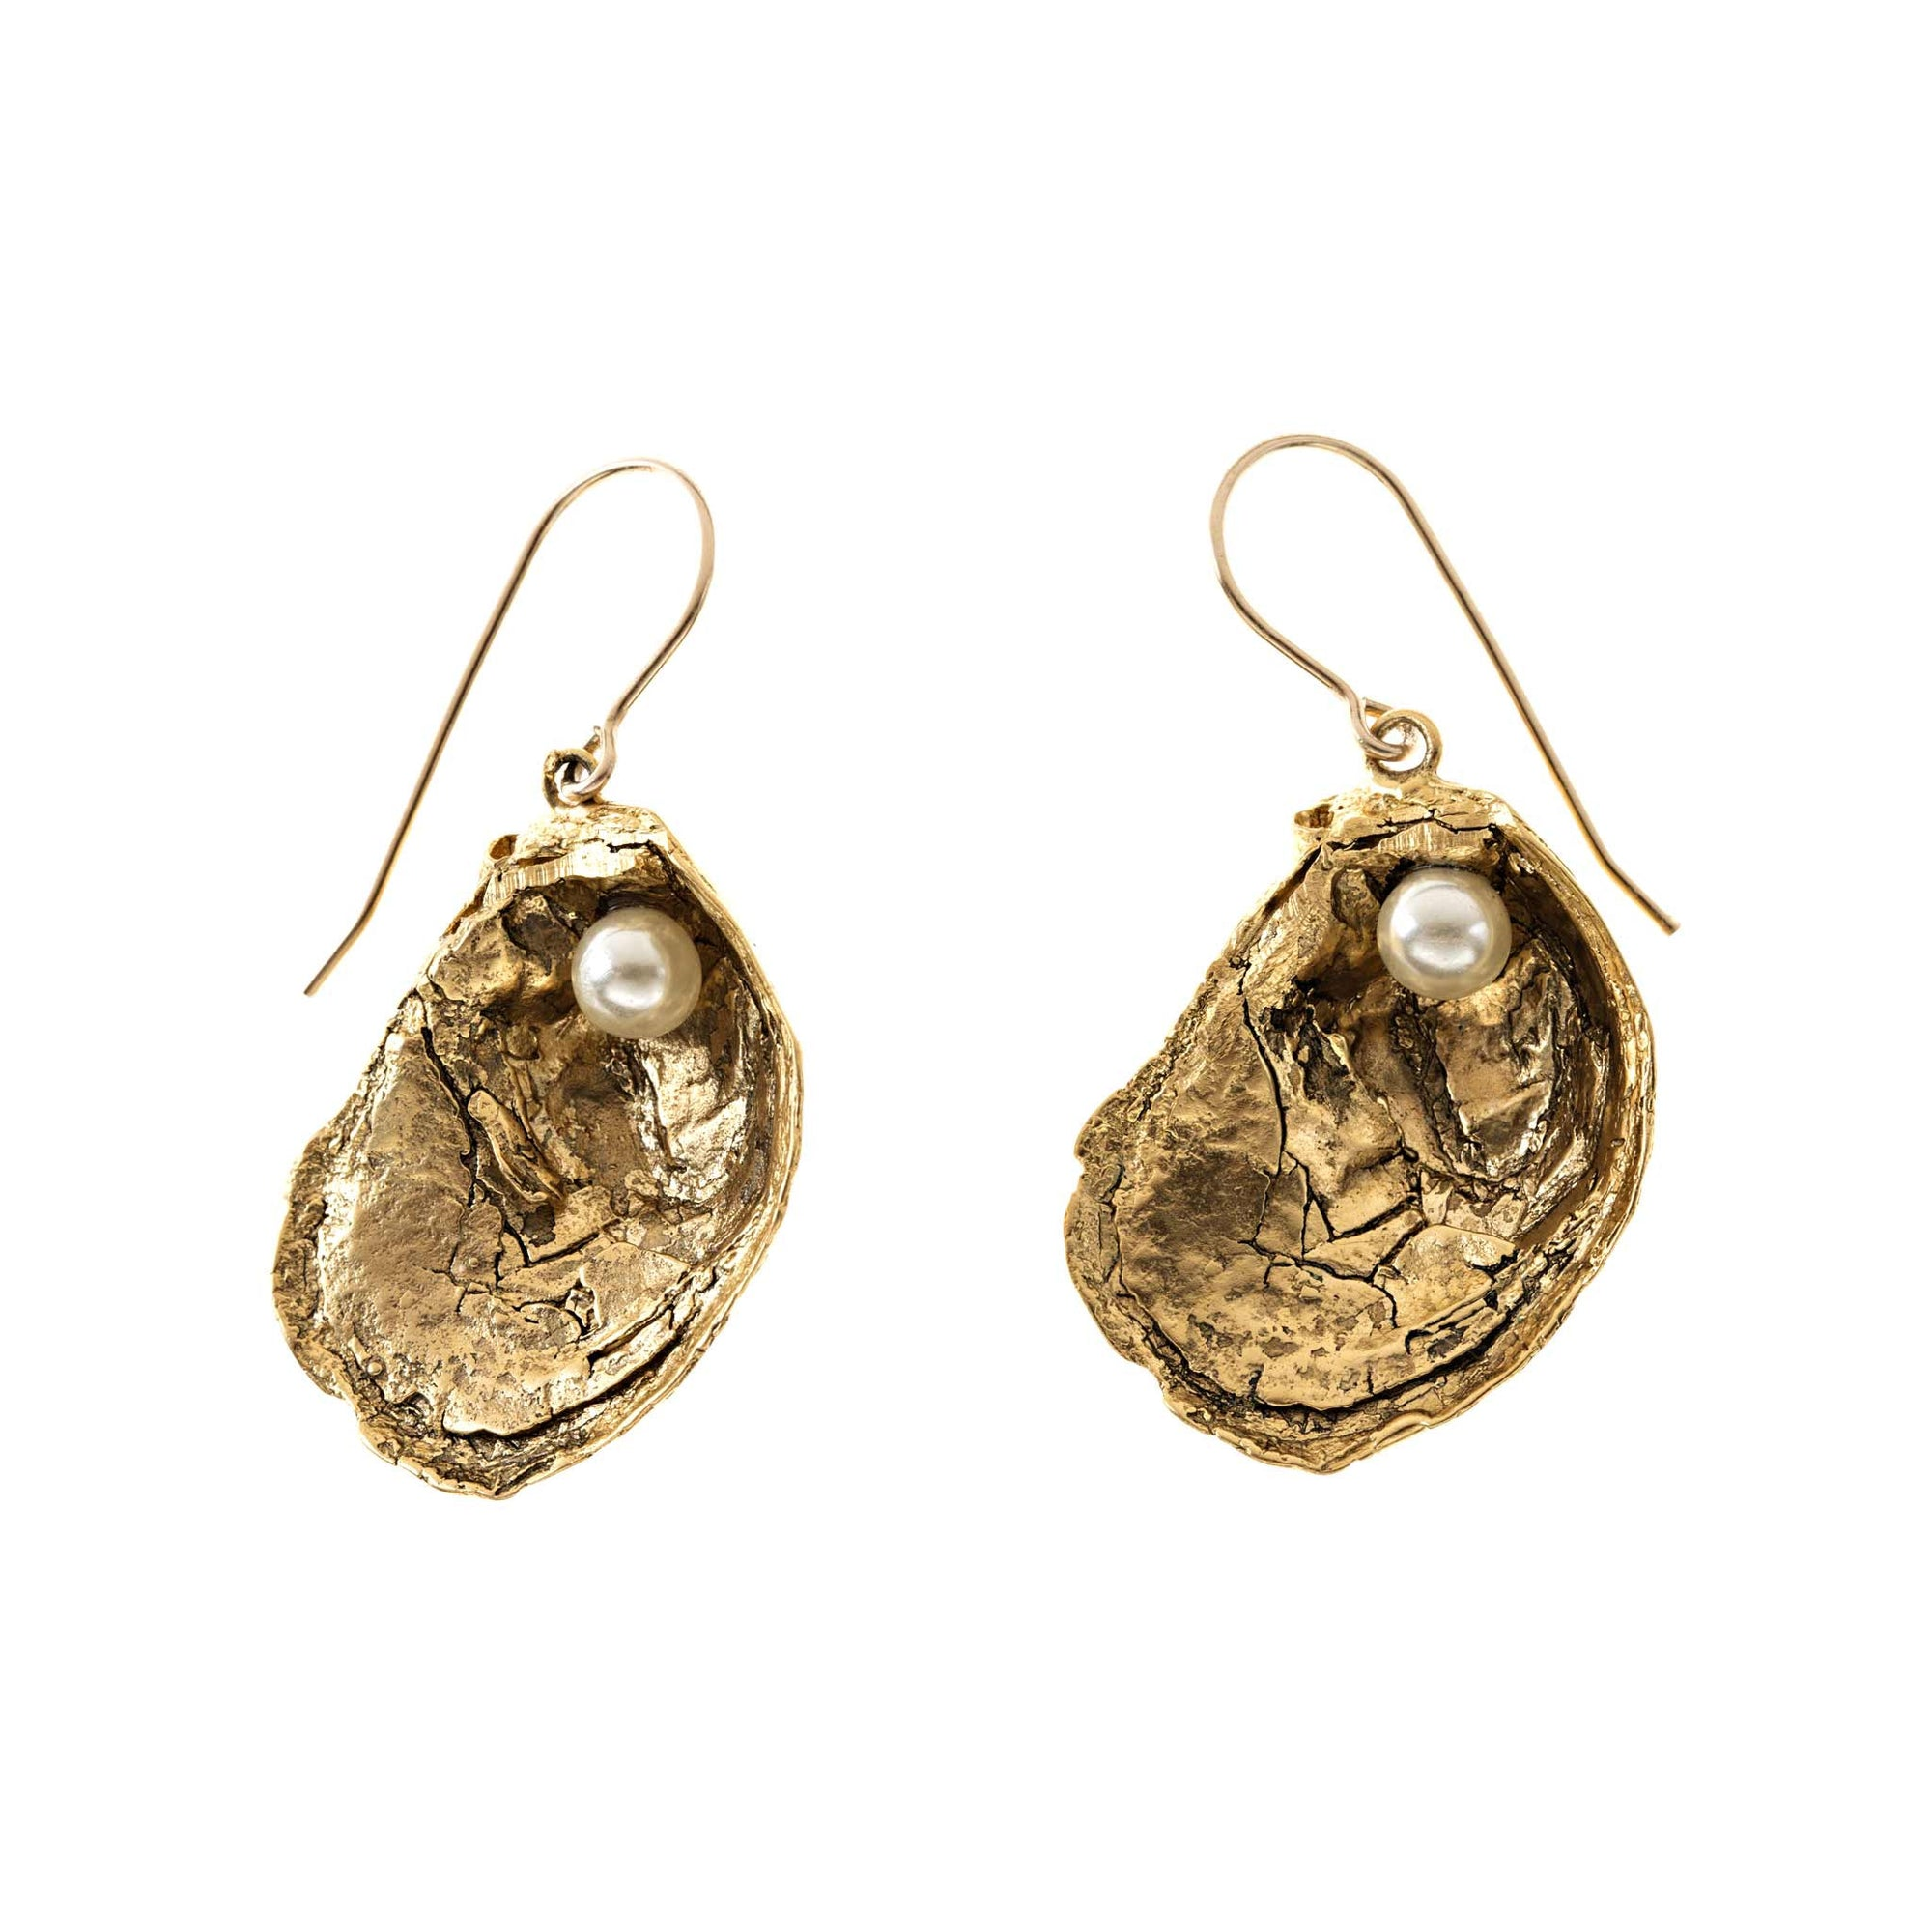 Oyster Shell Earrings in Antique Gold